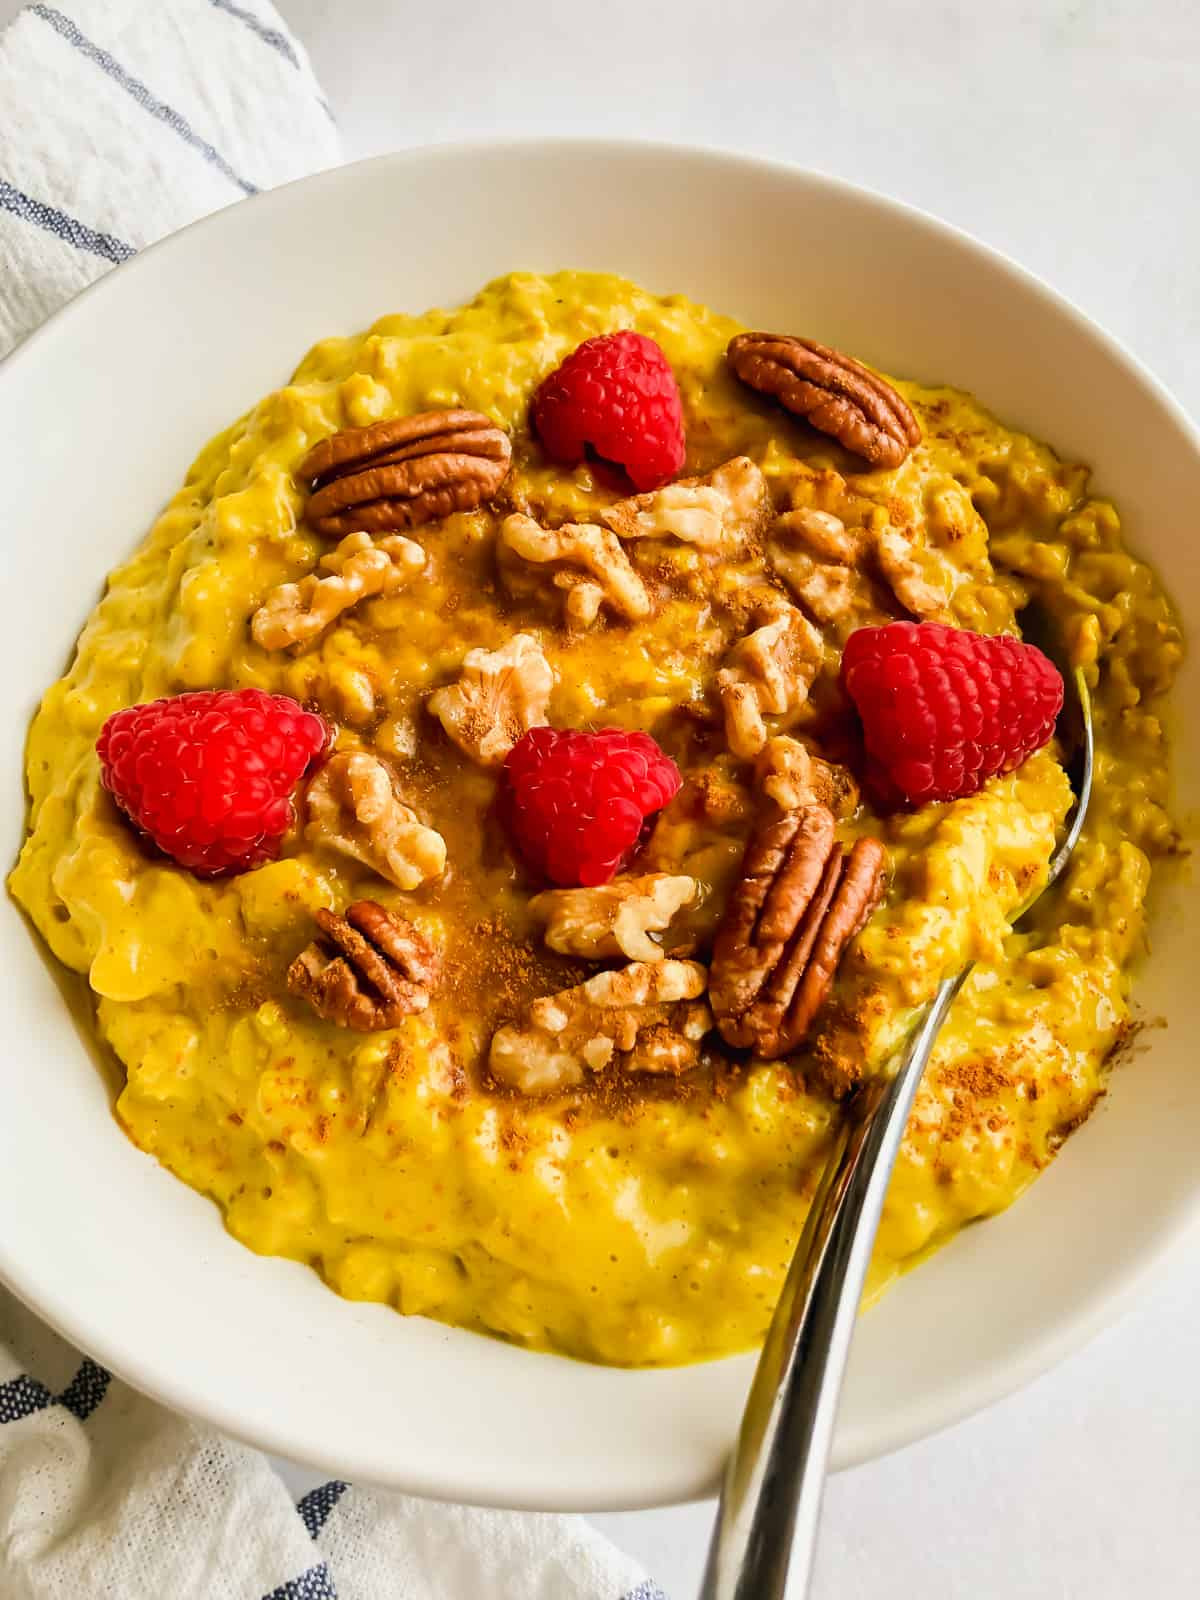 turmeric oatmeal topped with fruit and nuts in a white bowl on white surface